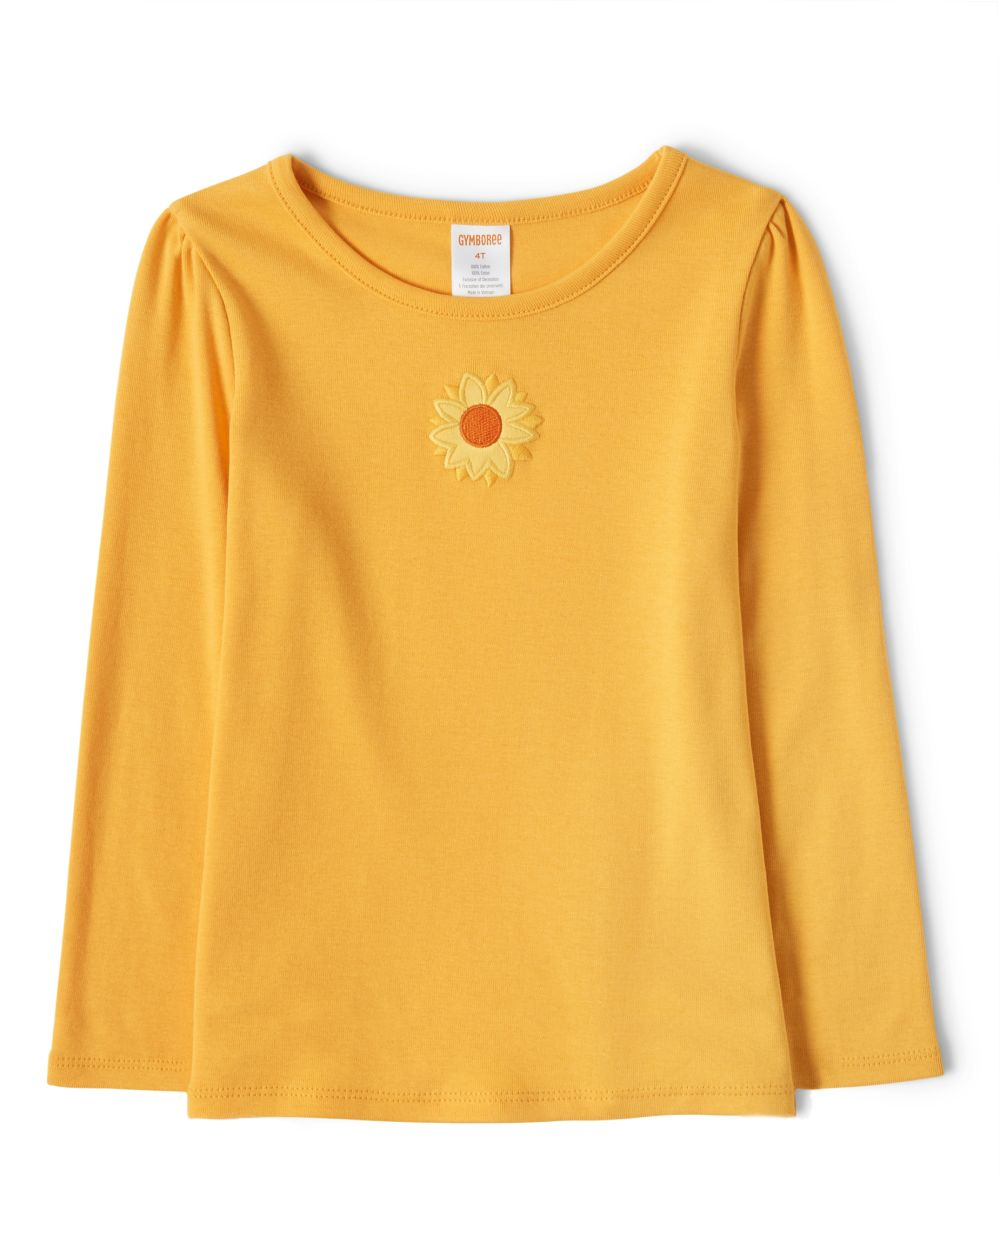 Girls Sunflower Top - Harvest